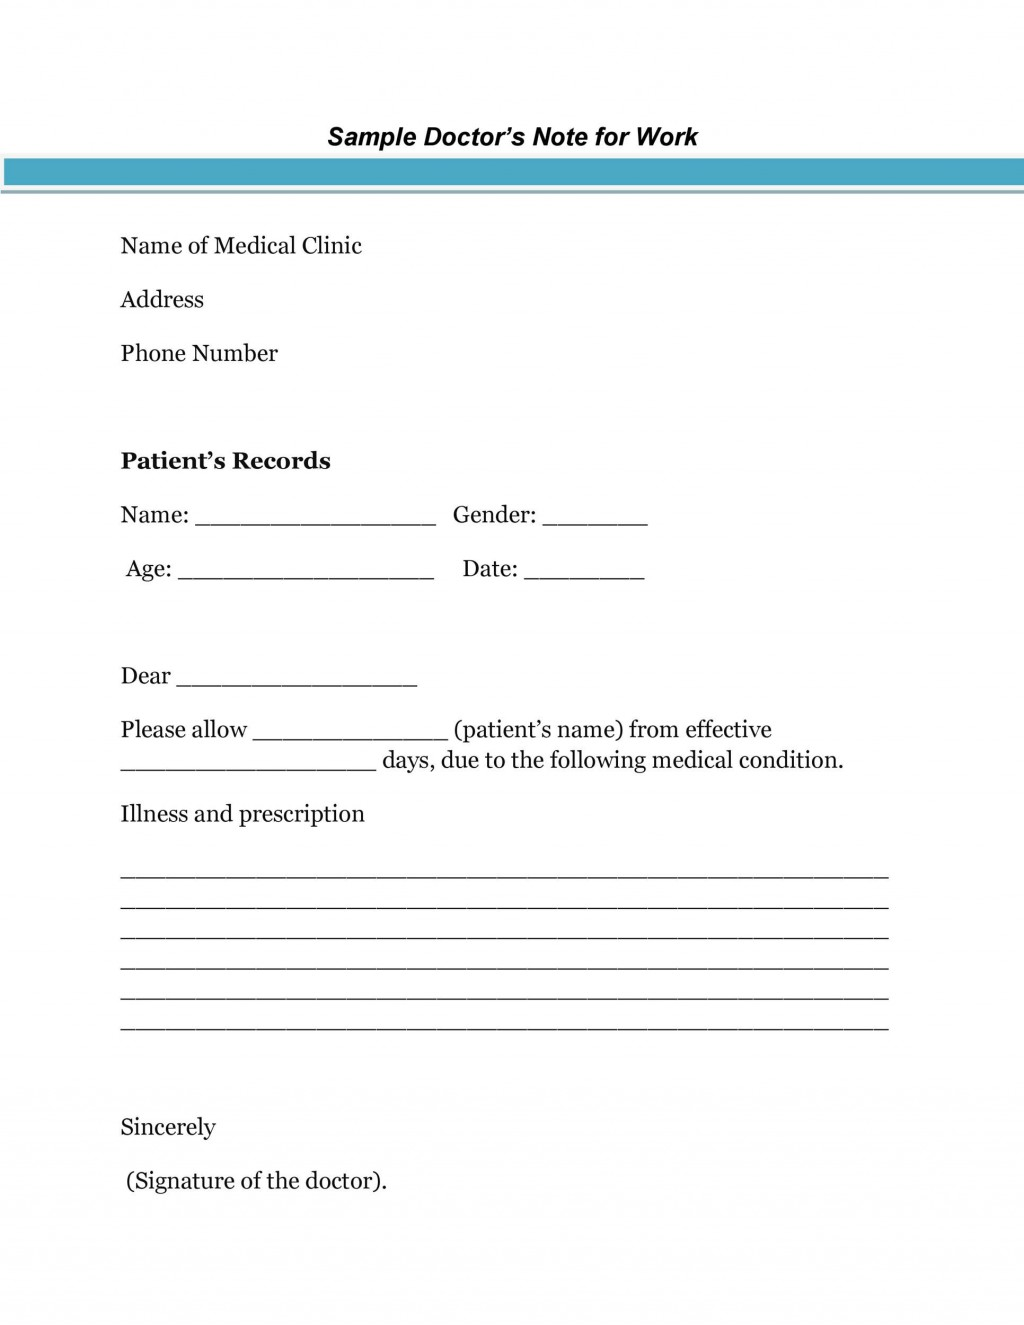 002 Unbelievable Doctor Note For Missing Work Template High Def  Doctor'Large